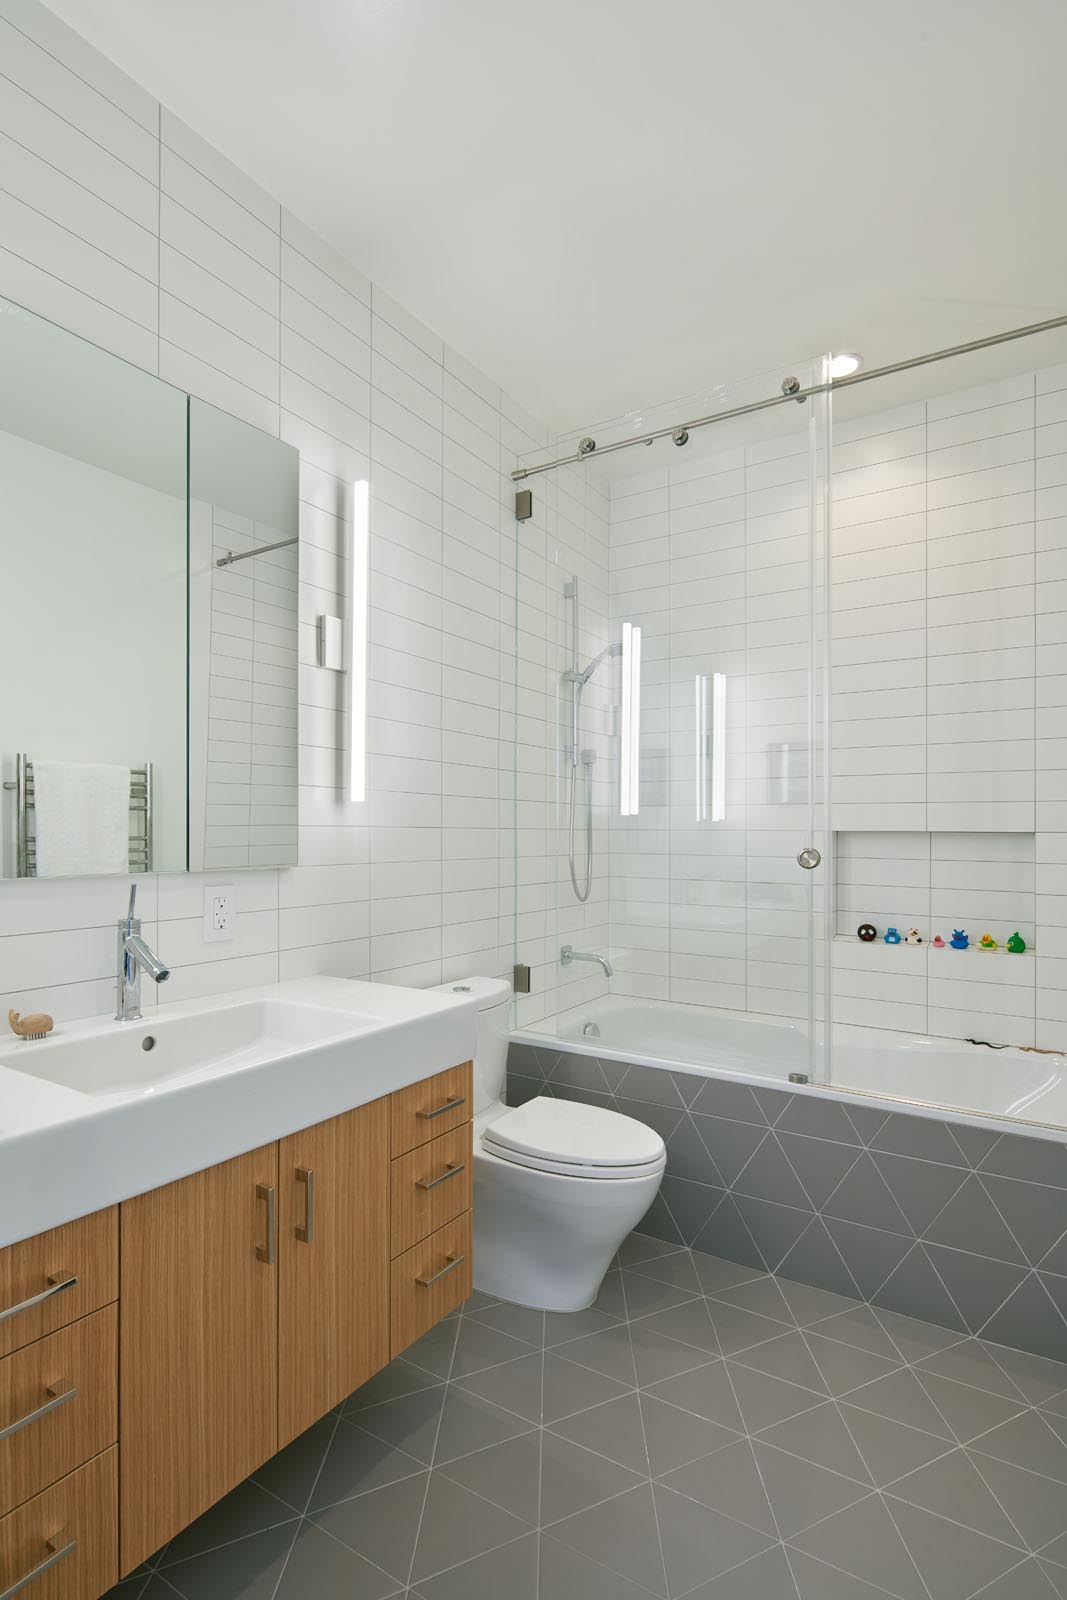 In this modern bathroom, simple white rectangular tiles cover the walls, while gray triangle tiles cover the floor and wrap onto the bathtub.